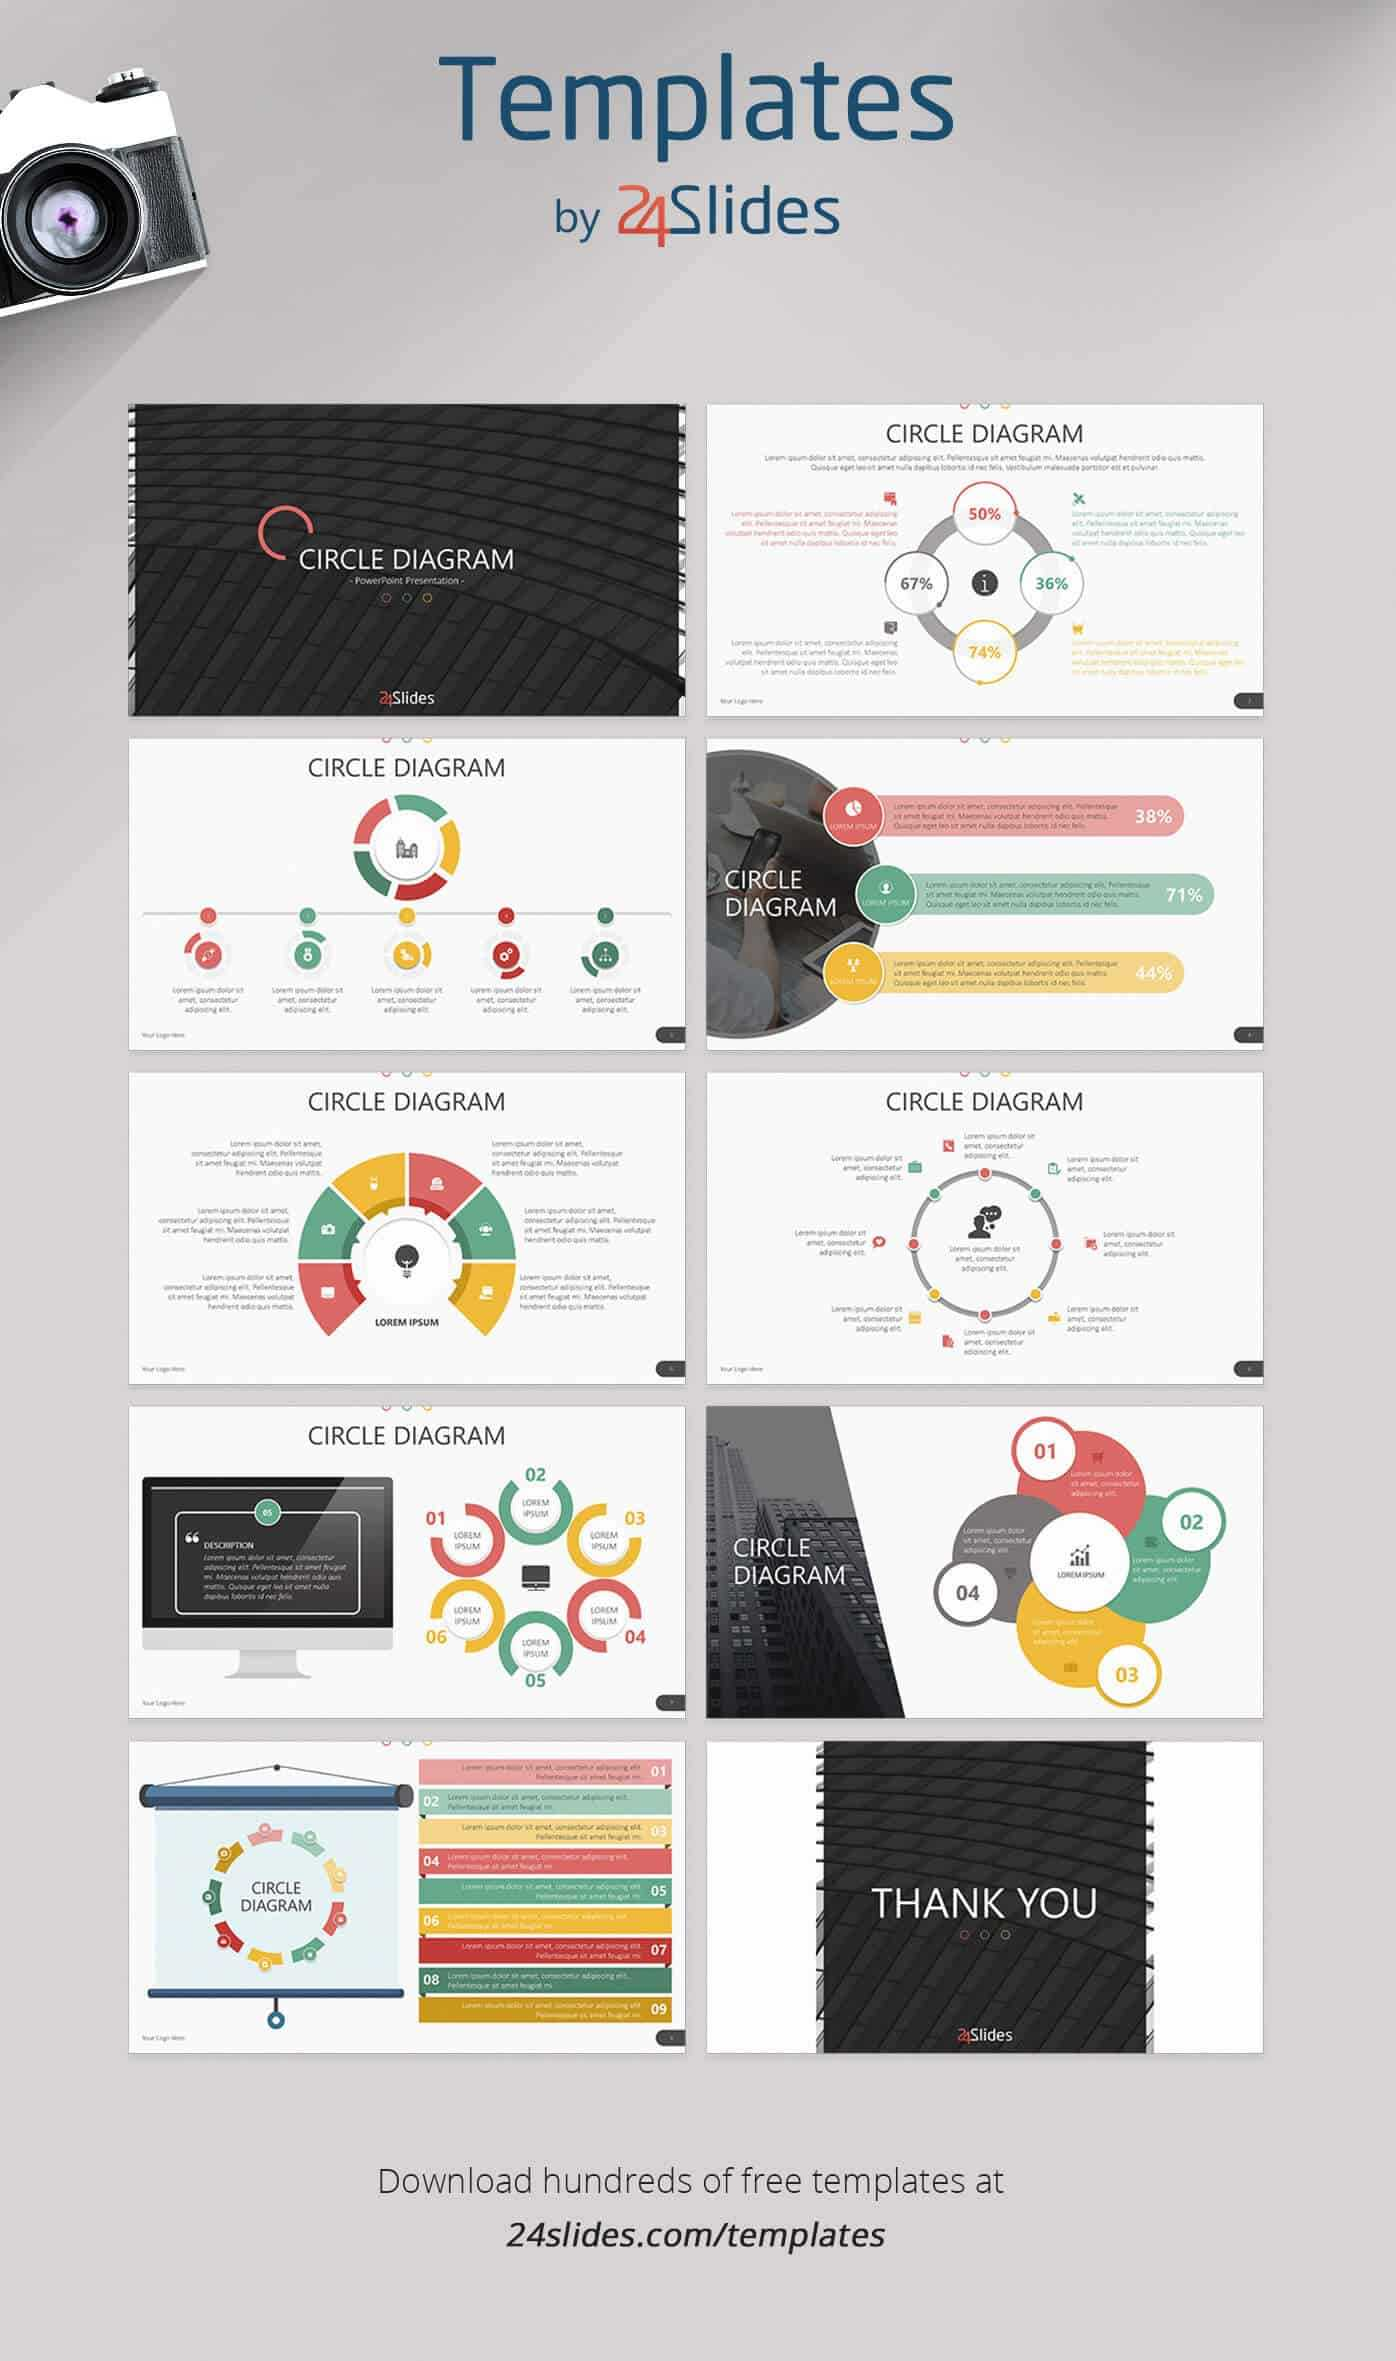 15 Fun And Colorful Free Powerpoint Templates | Present Better With Regard To Sample Templates For Powerpoint Presentation